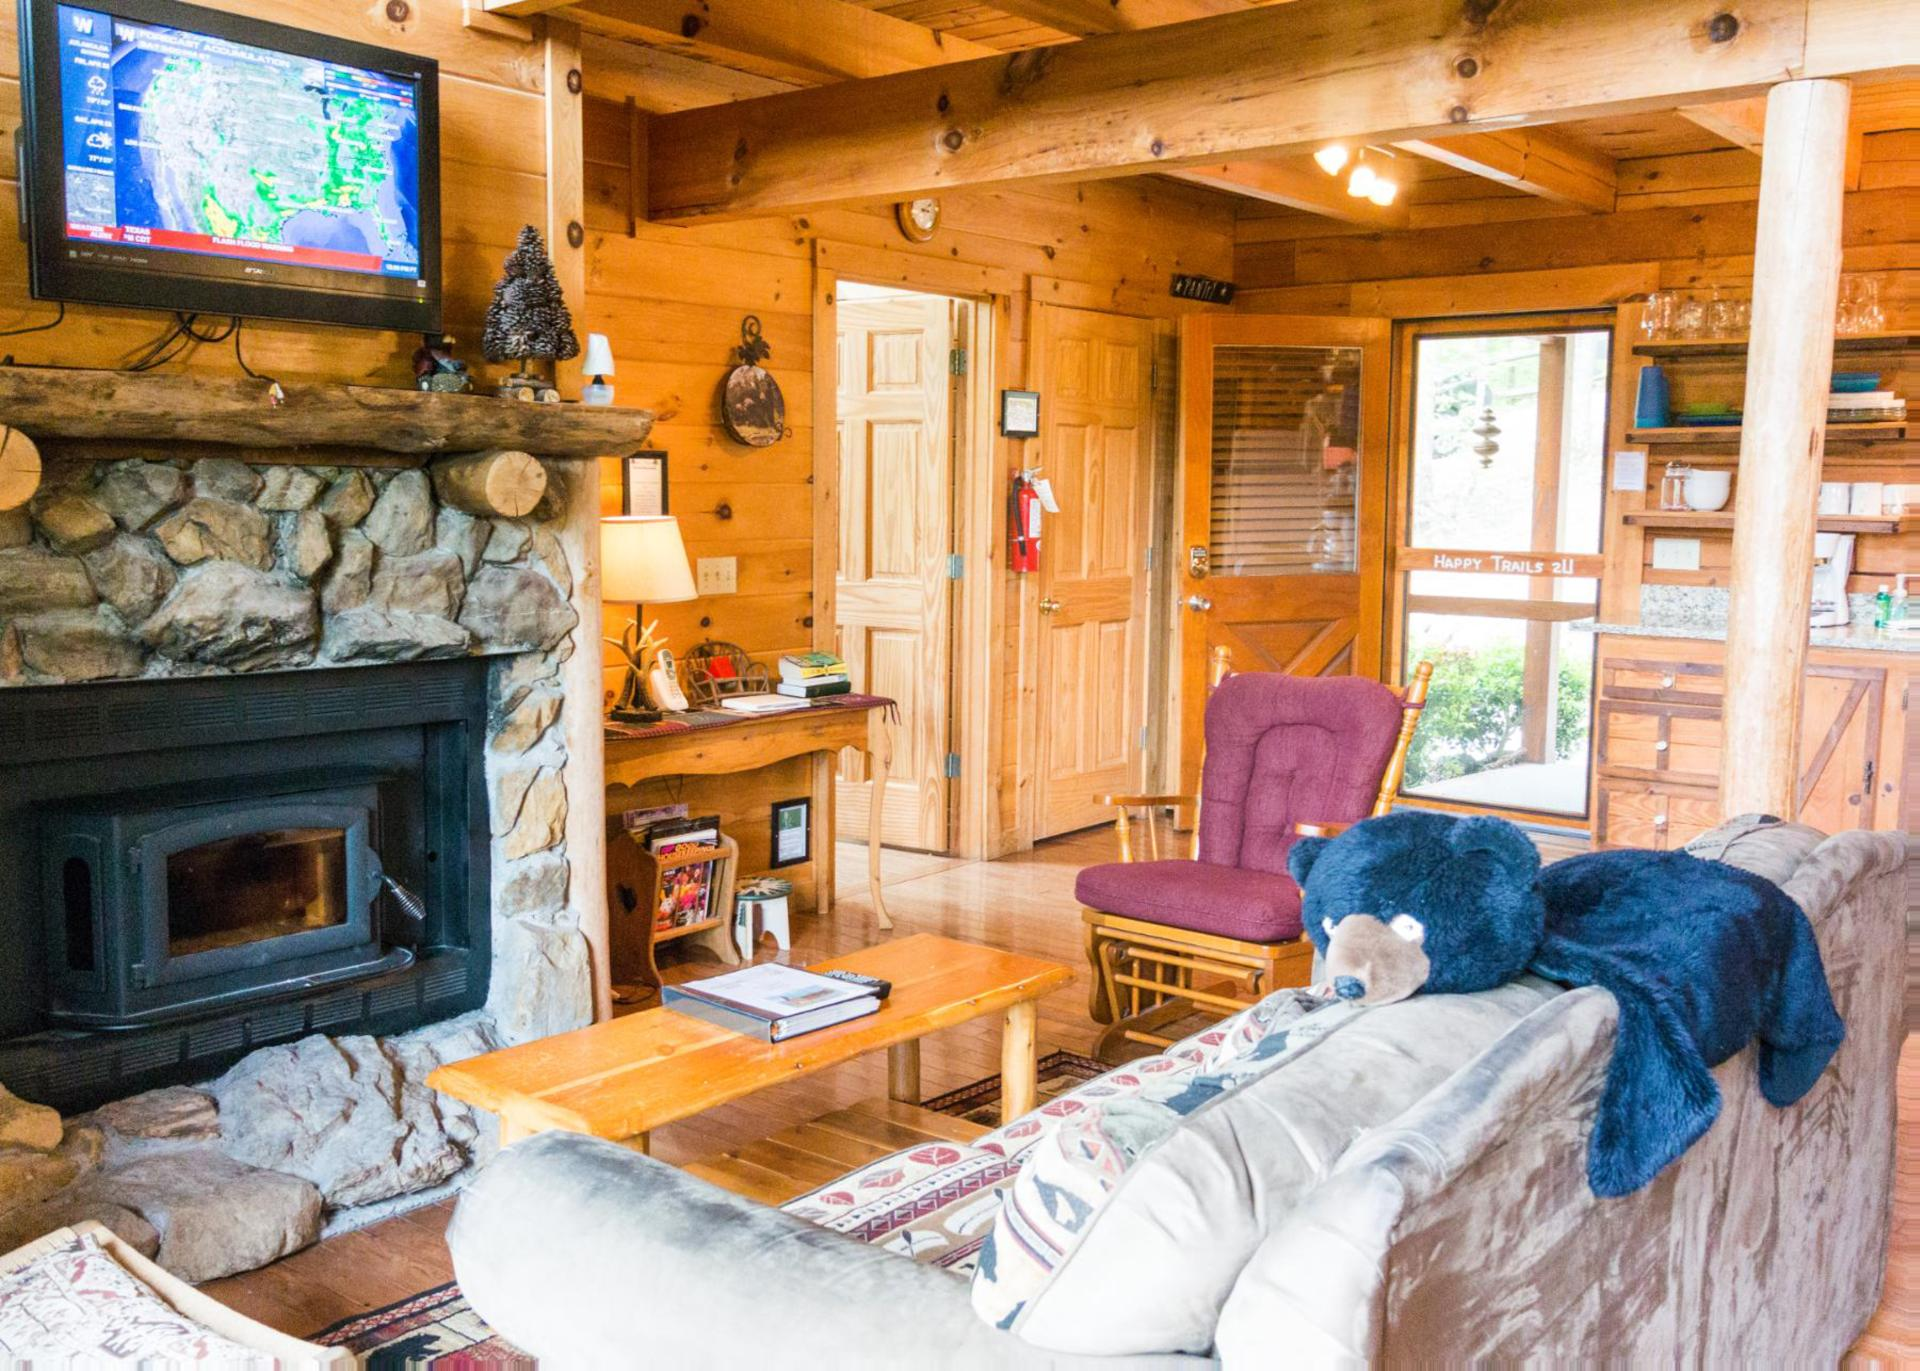 tubs dream s hot tanner best cabins architect custom construction louisiana cottages lake log homes ca by tahoe mark in images pinterest with on tolkienbritta